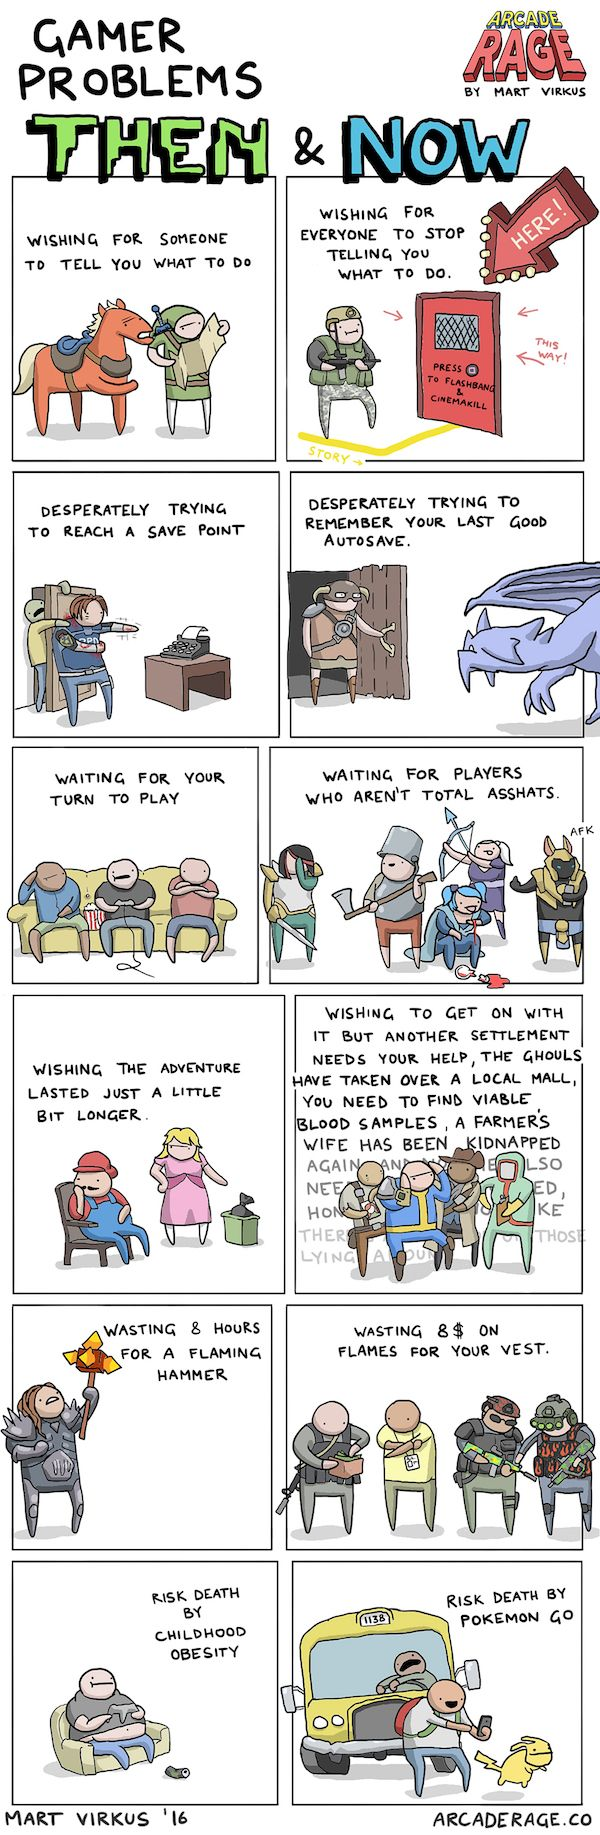 Gamer Problems in the 80's vs Today via www.arcaderage.co